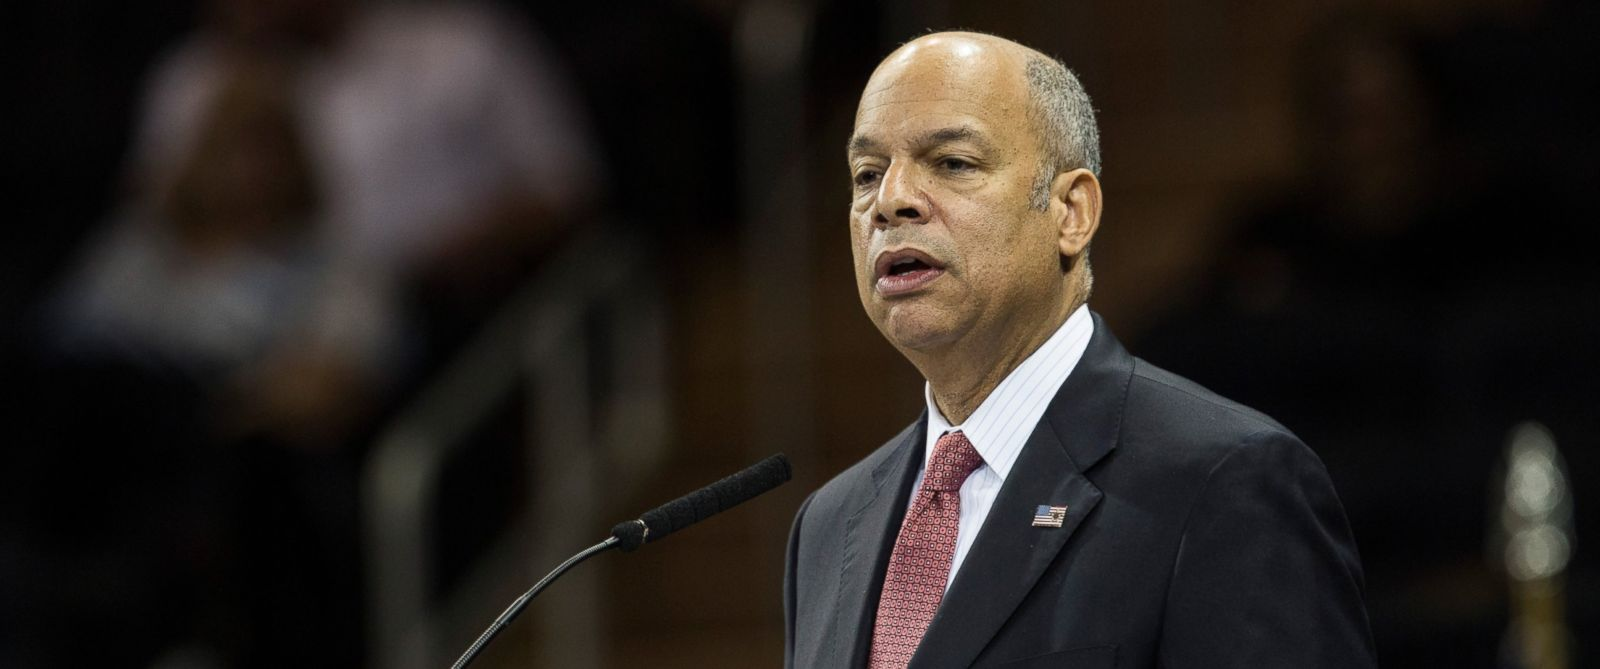 PHOTO: Department of Homeland Security Chief Jeh Johnson speaks, Dec. 29, 2015 at Madison Square Garden in New York.